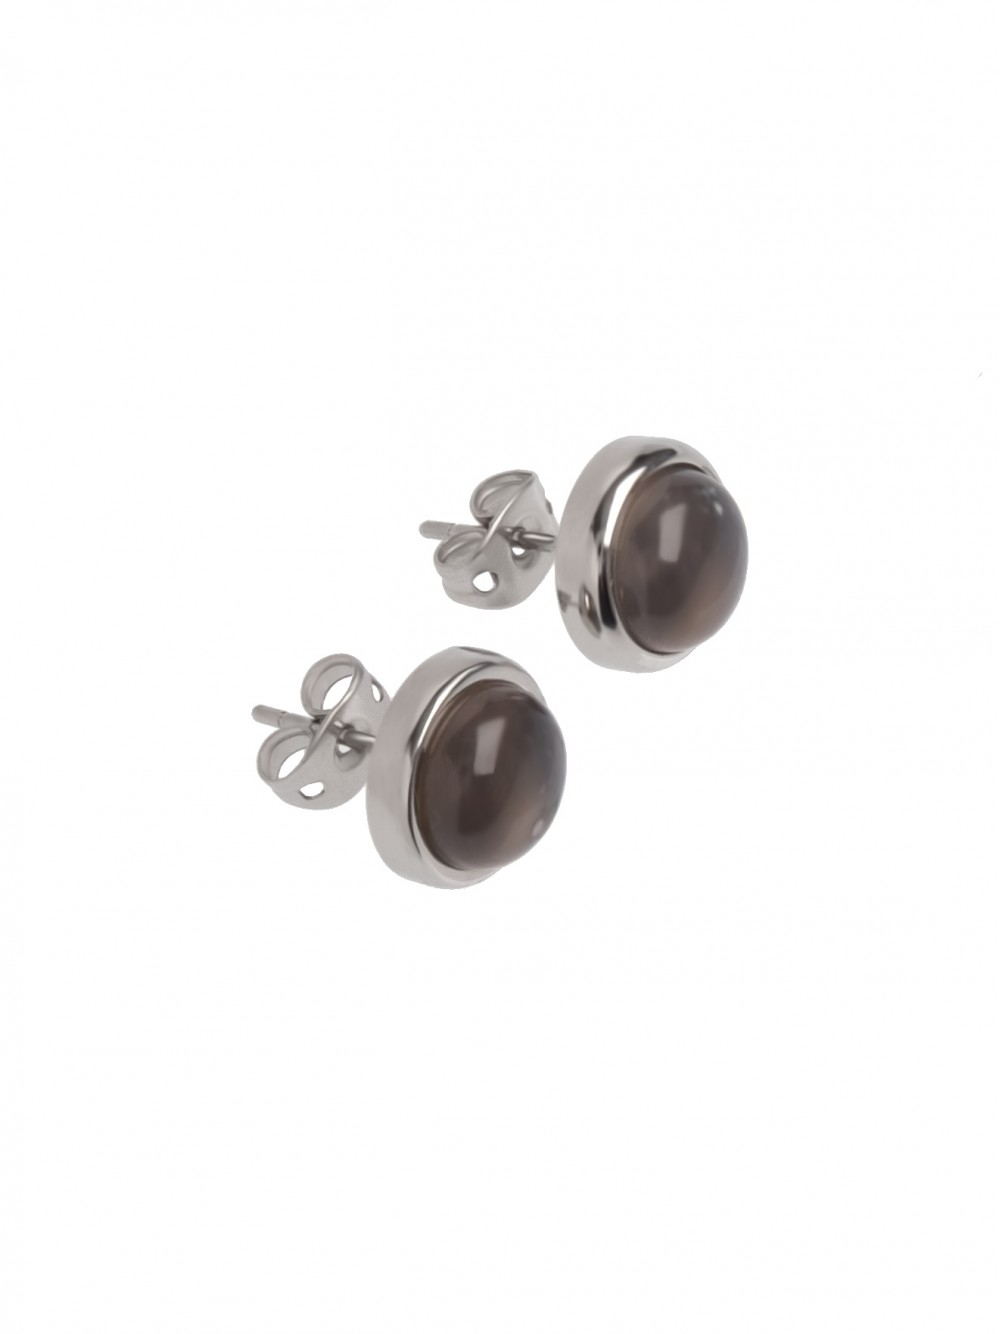 EAR STUDS GREY MOON